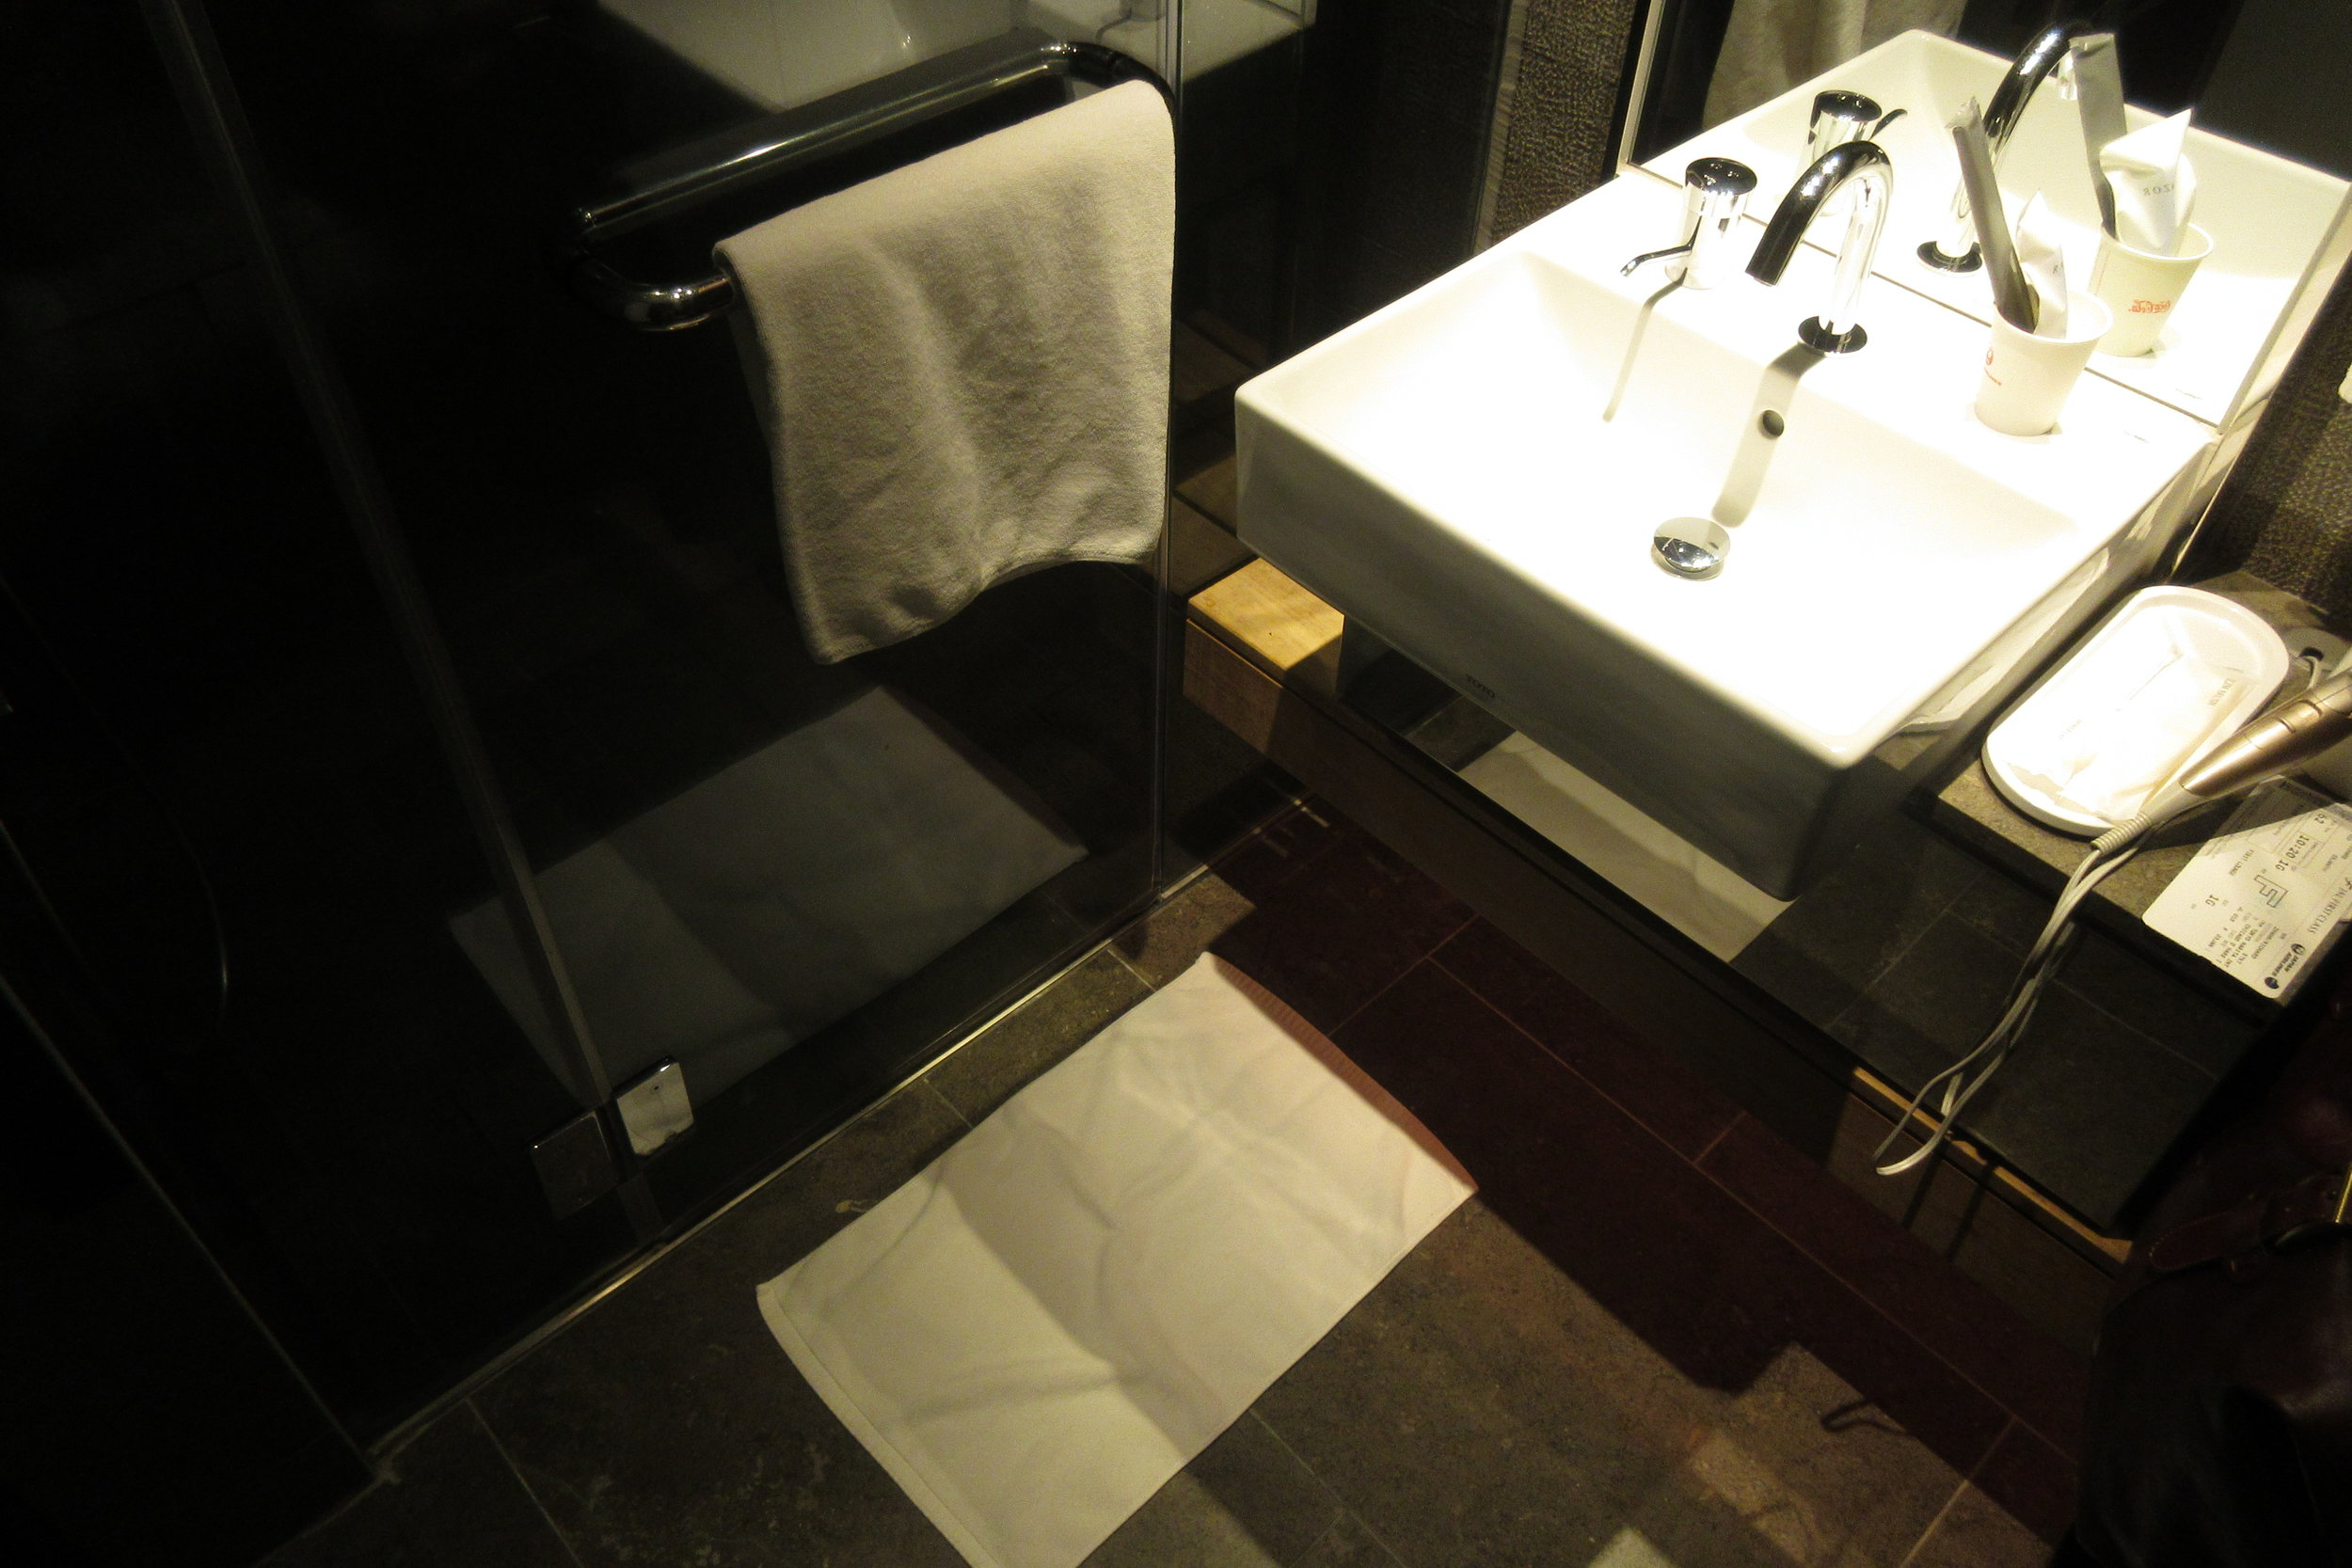 Japan Airlines First Class Lounge Tokyo Narita – Shower room